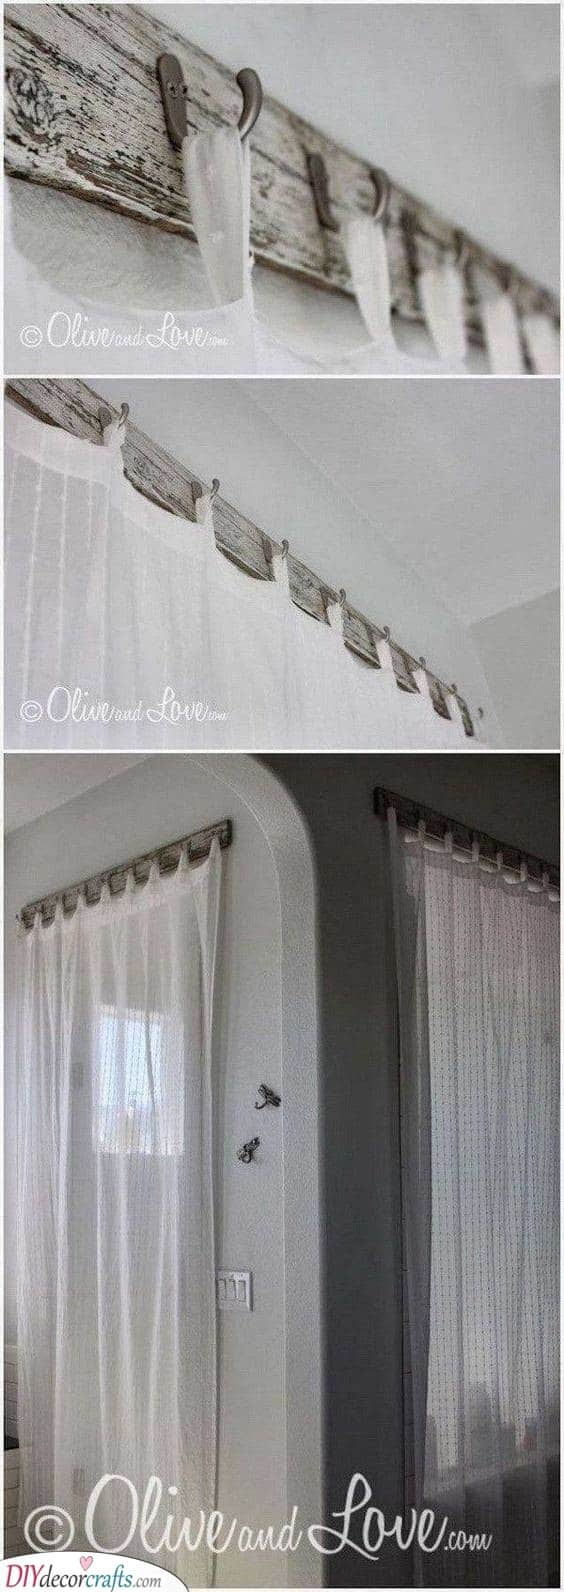 http://forcreativejuice.com/rustic-diy-projects-add-warmth-farmhouse-decor/